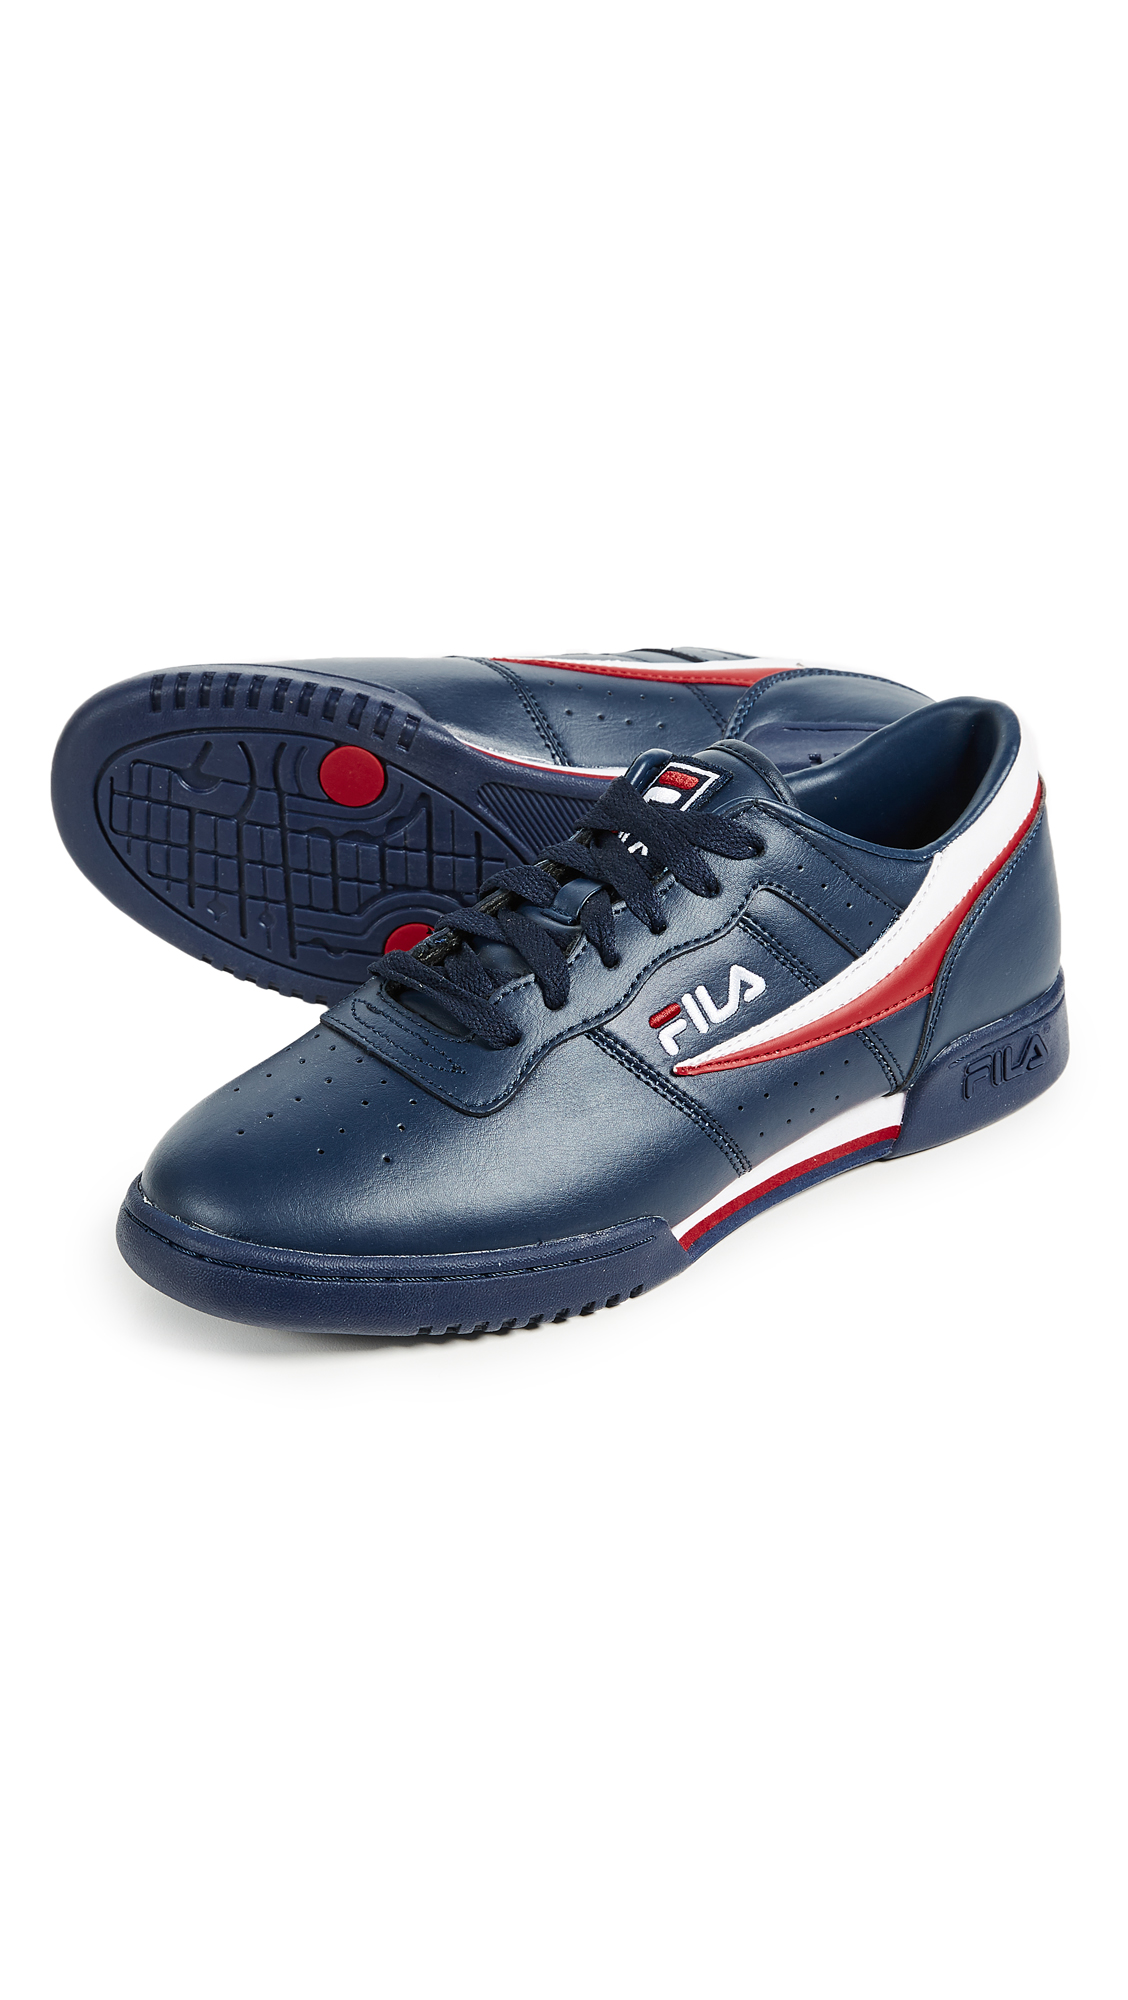 fila shoes nzd currency code cny